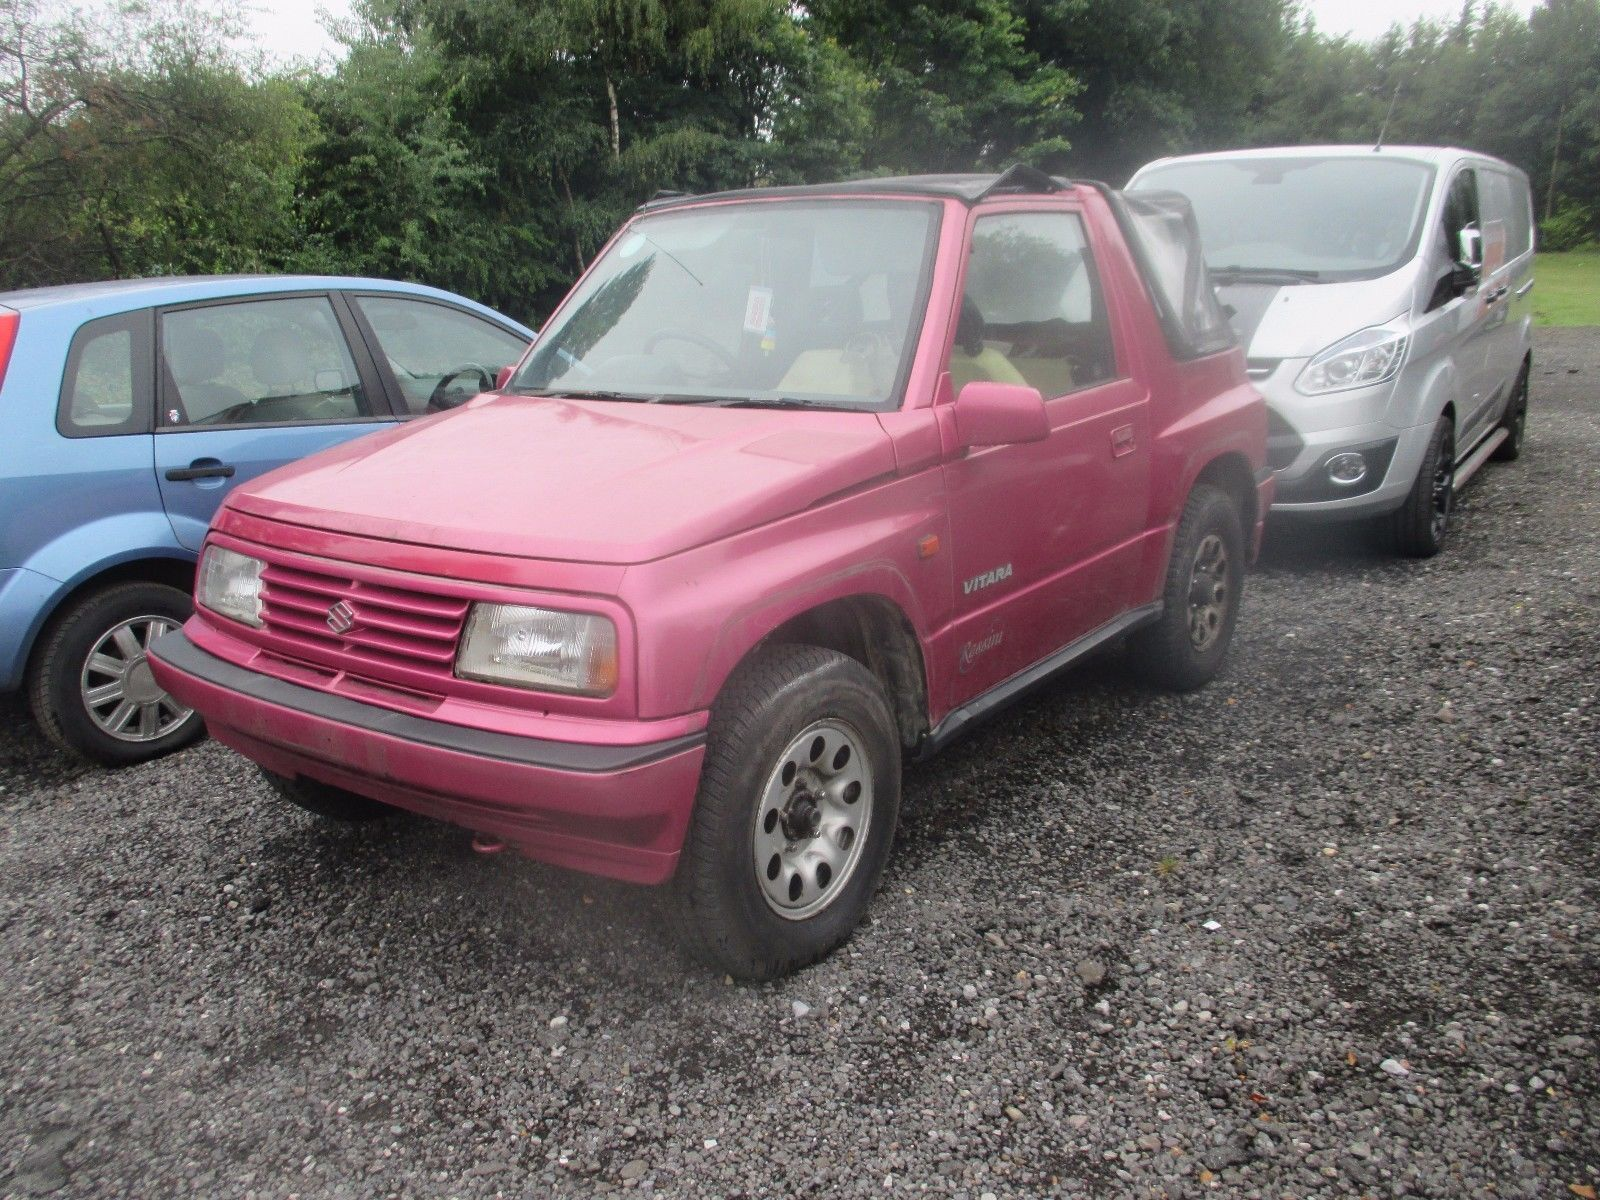 Ebay suzuki vitara rossini convertible spares or repairs carparts carrepair